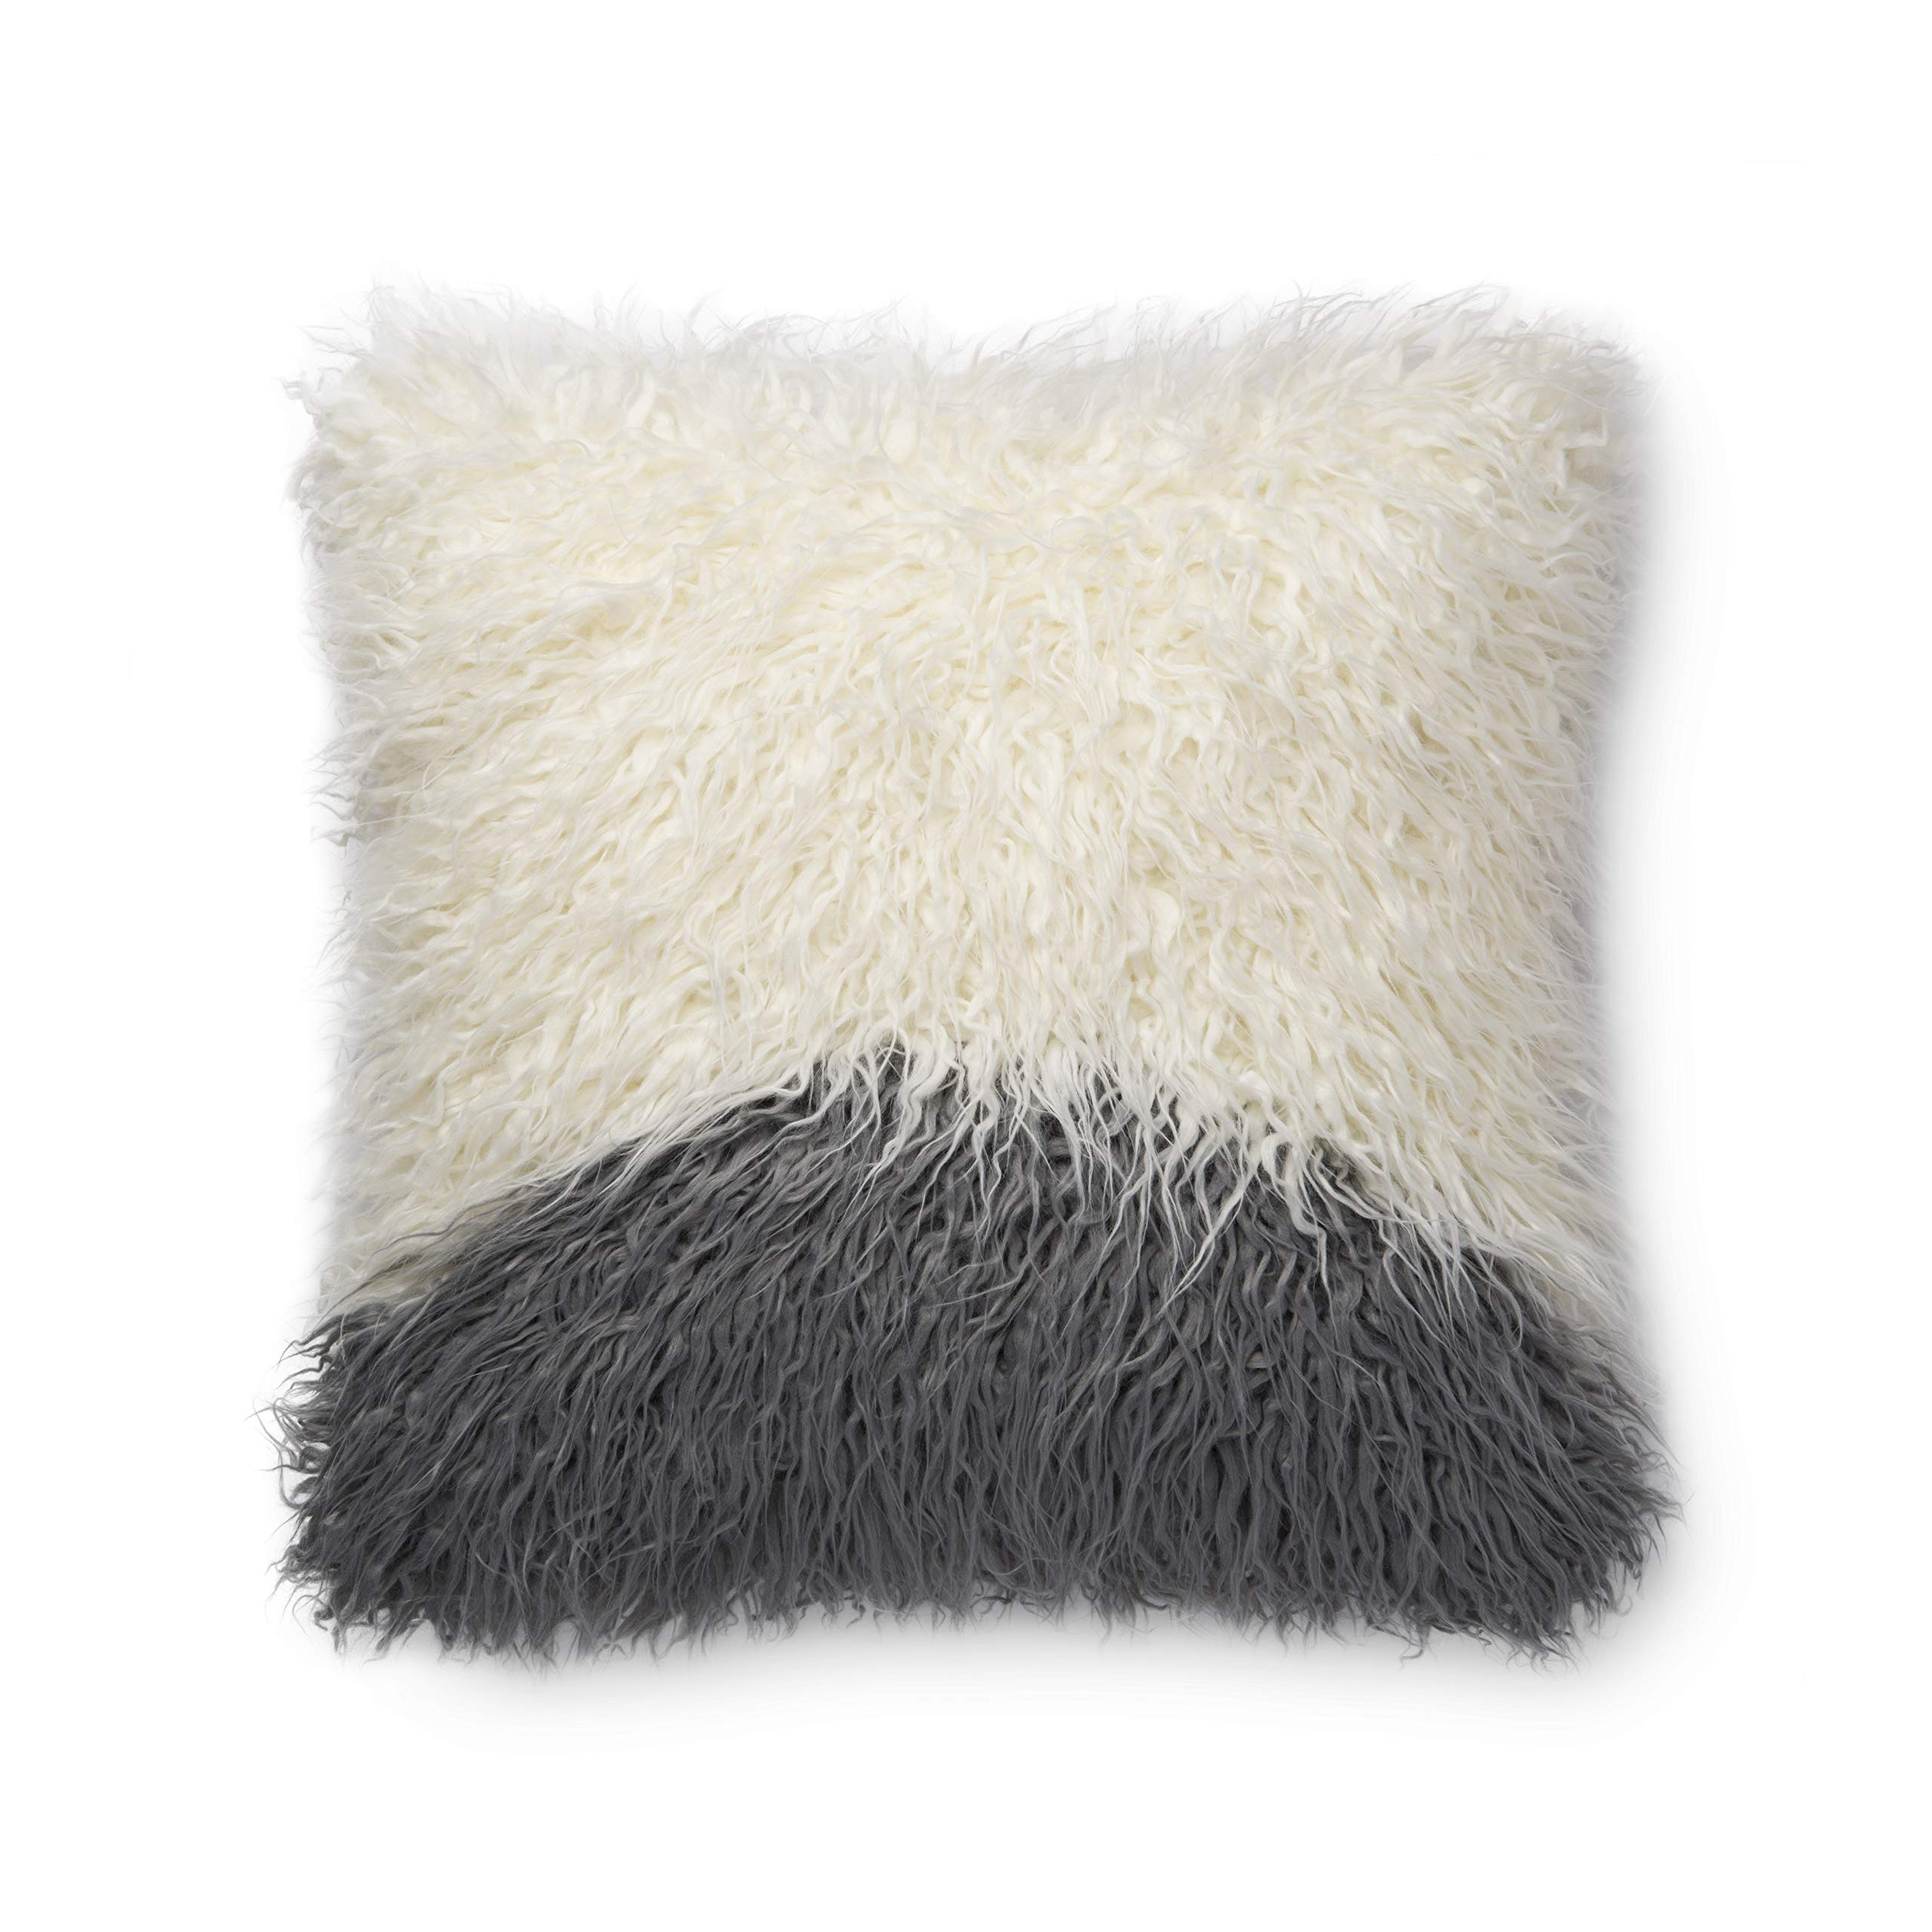 Now House by Jonathan Adler Faux Mongolian Fur Pillow, Grey and White